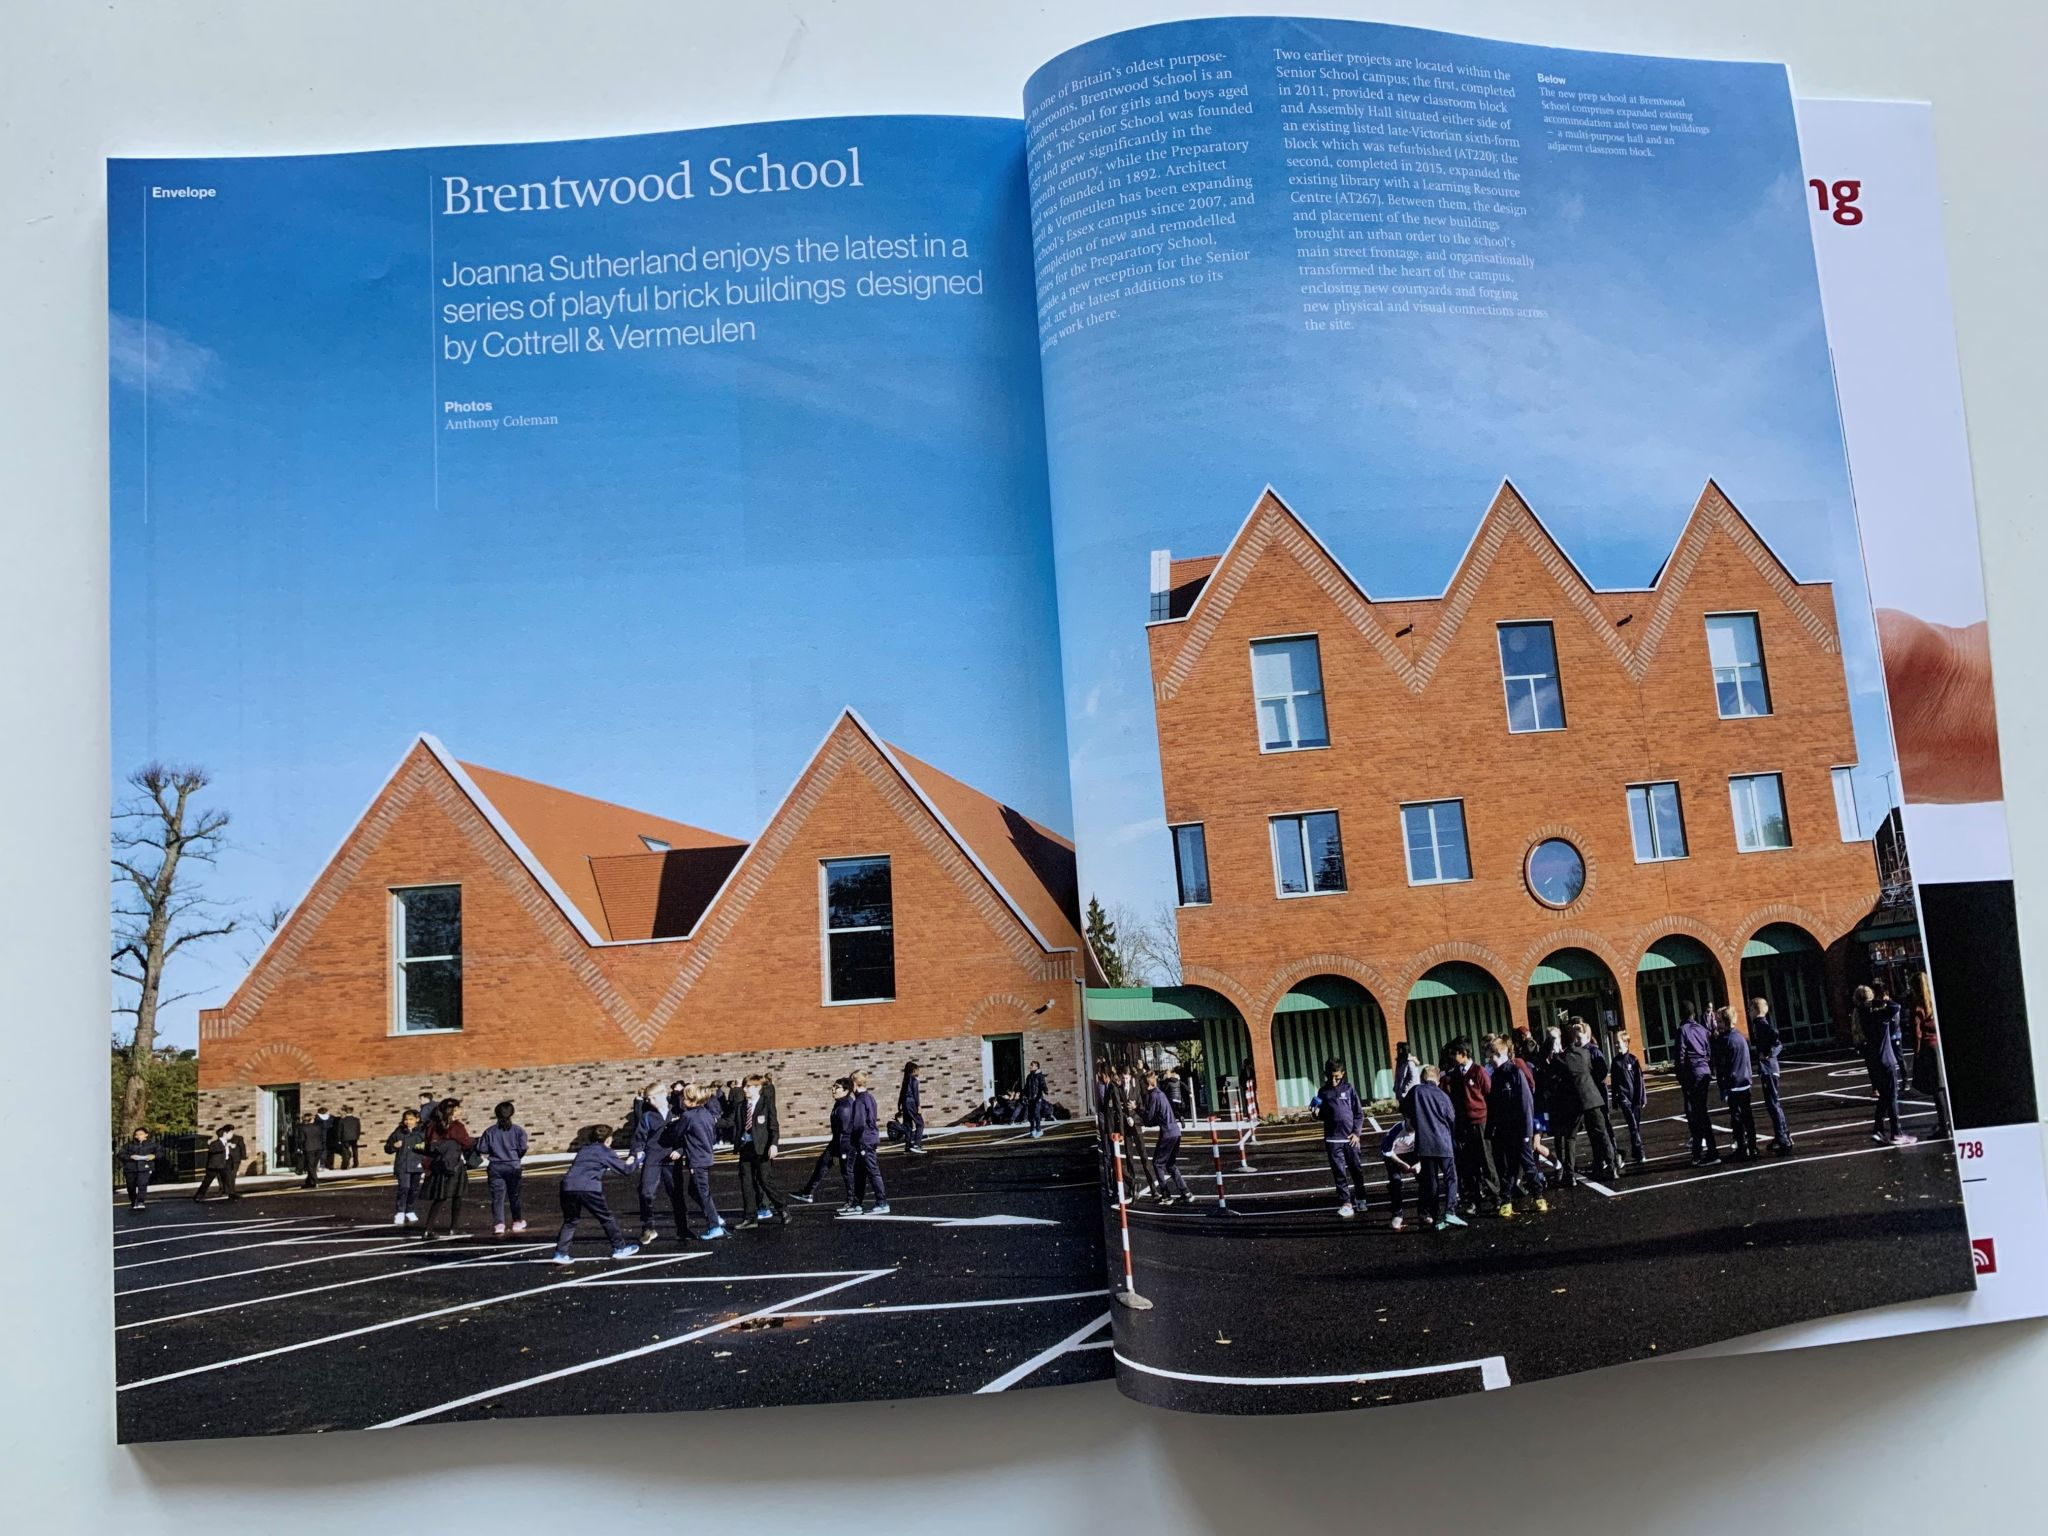 Brentwood School Featured in Architecture Today